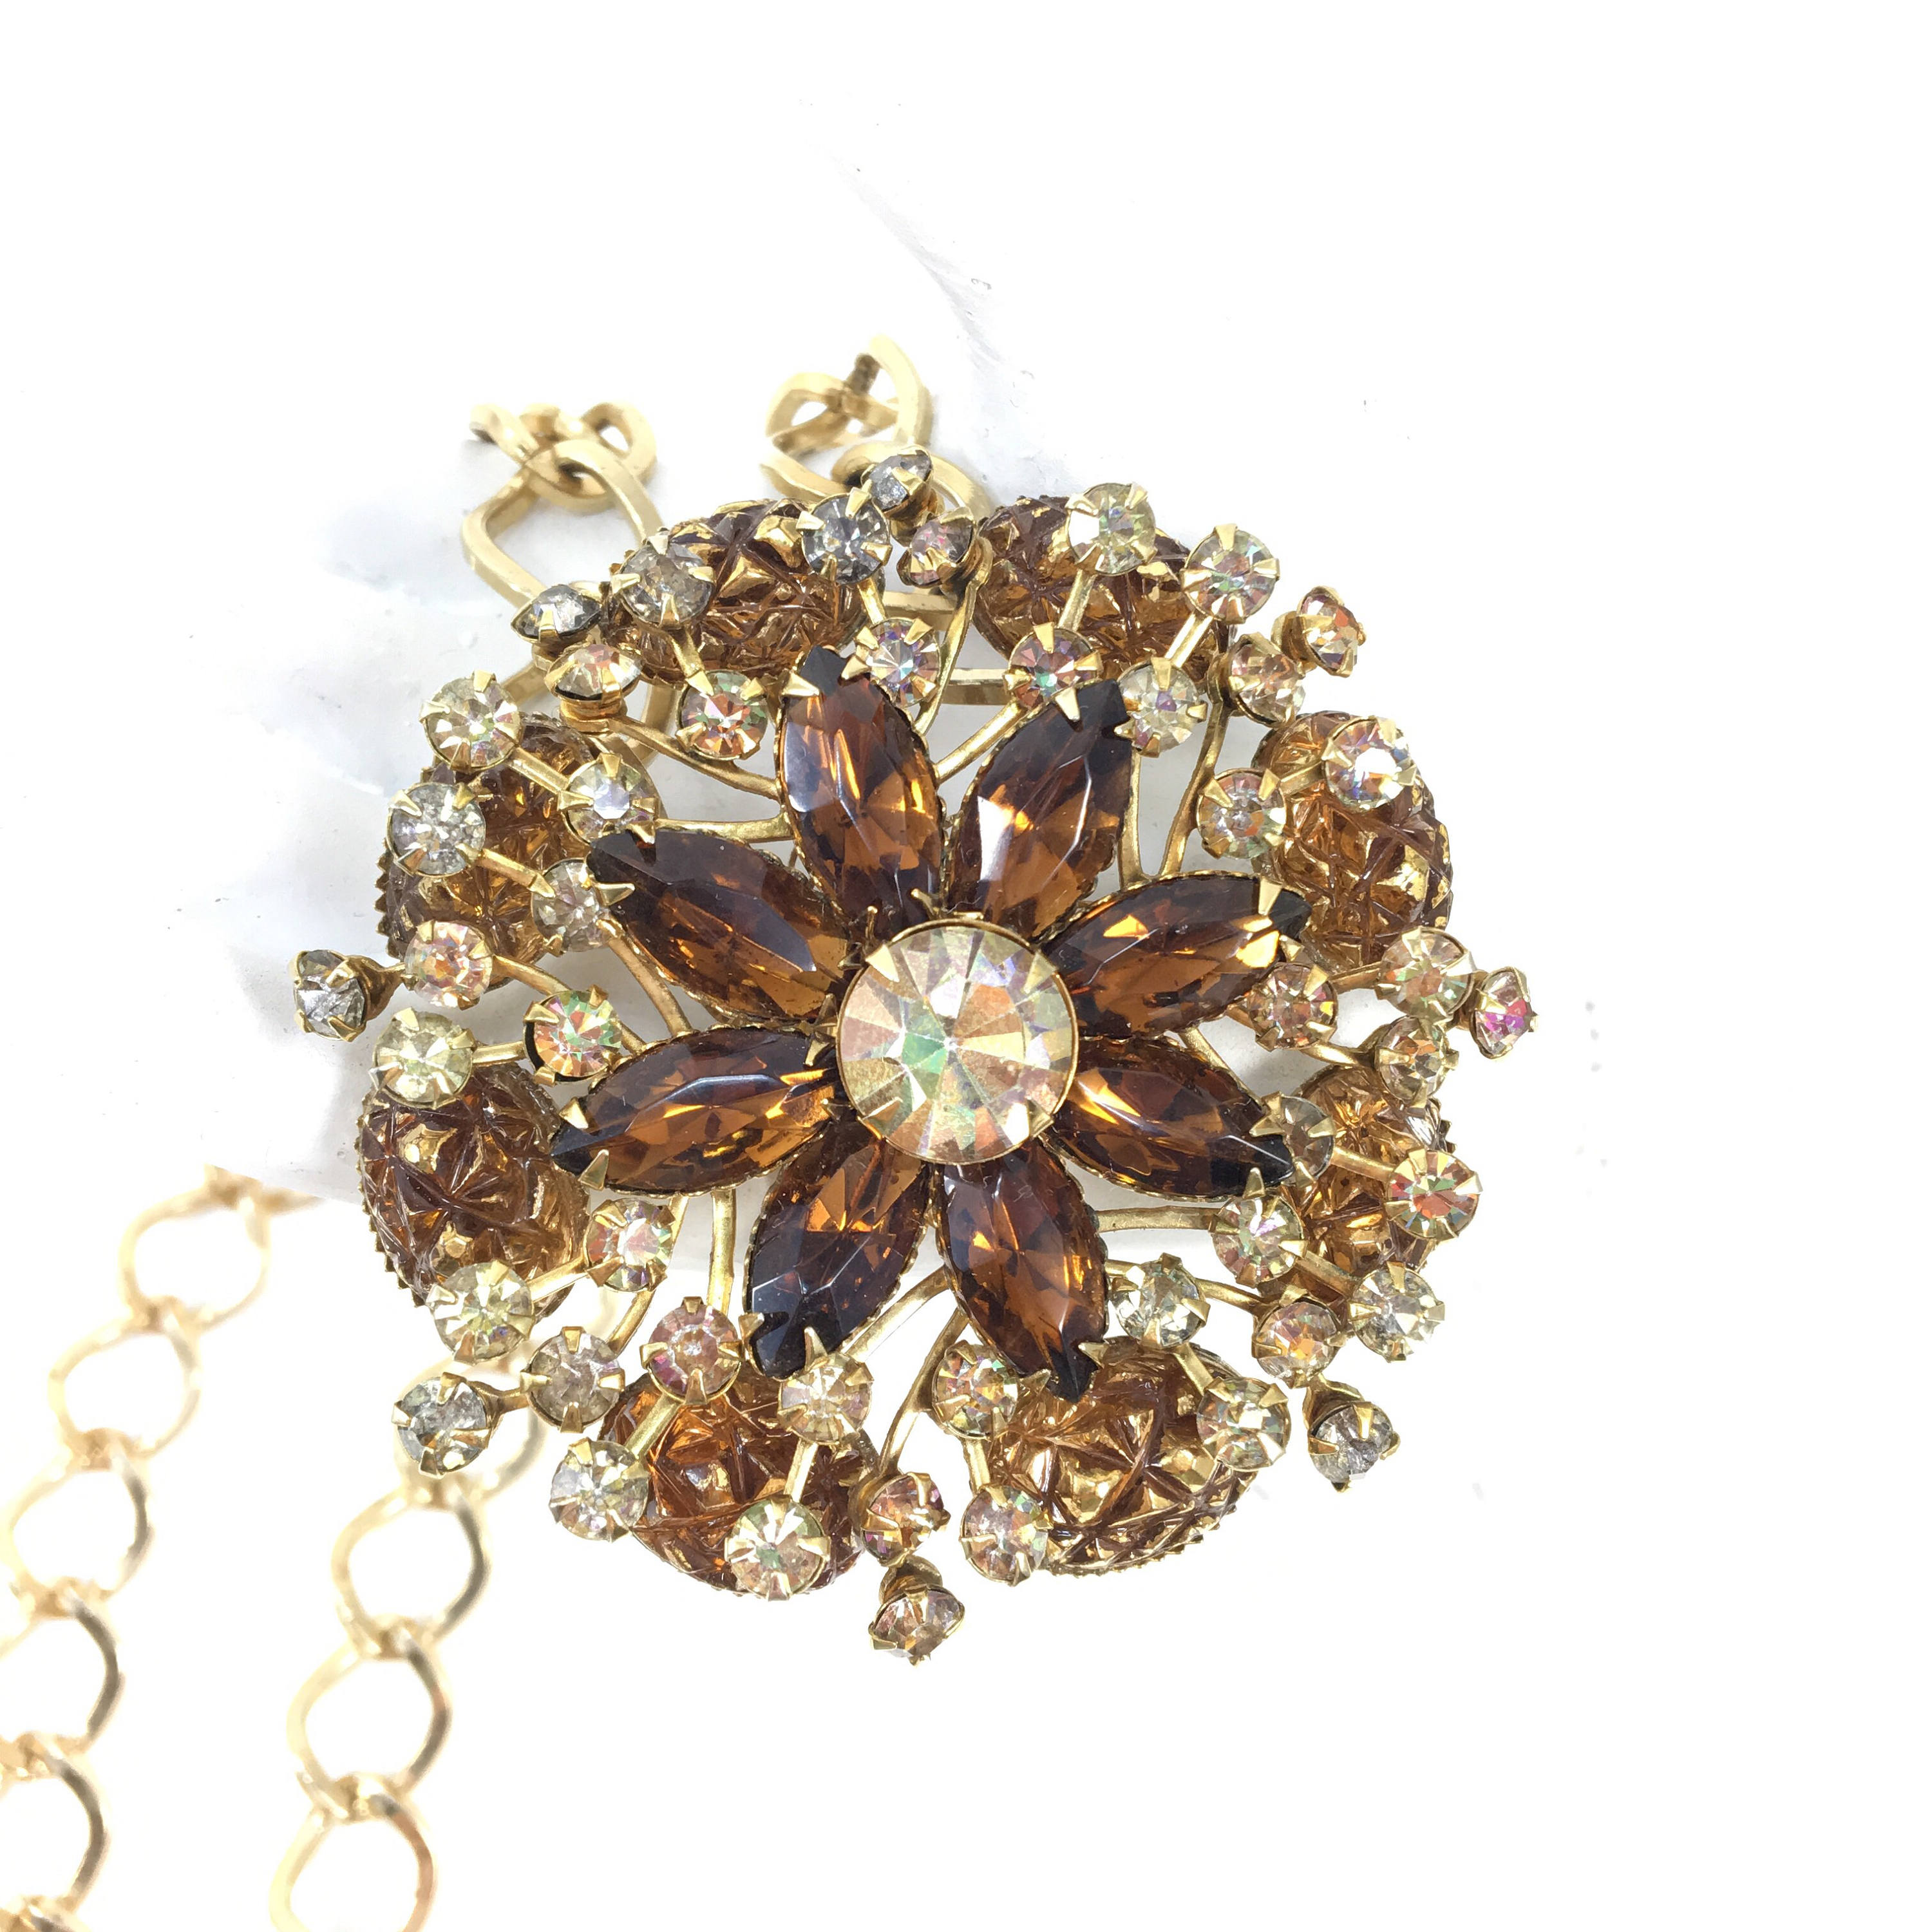 buccellati by necklace lotfinder brooch pendent details diamond a and necklacebrooch hgk sapphire lot